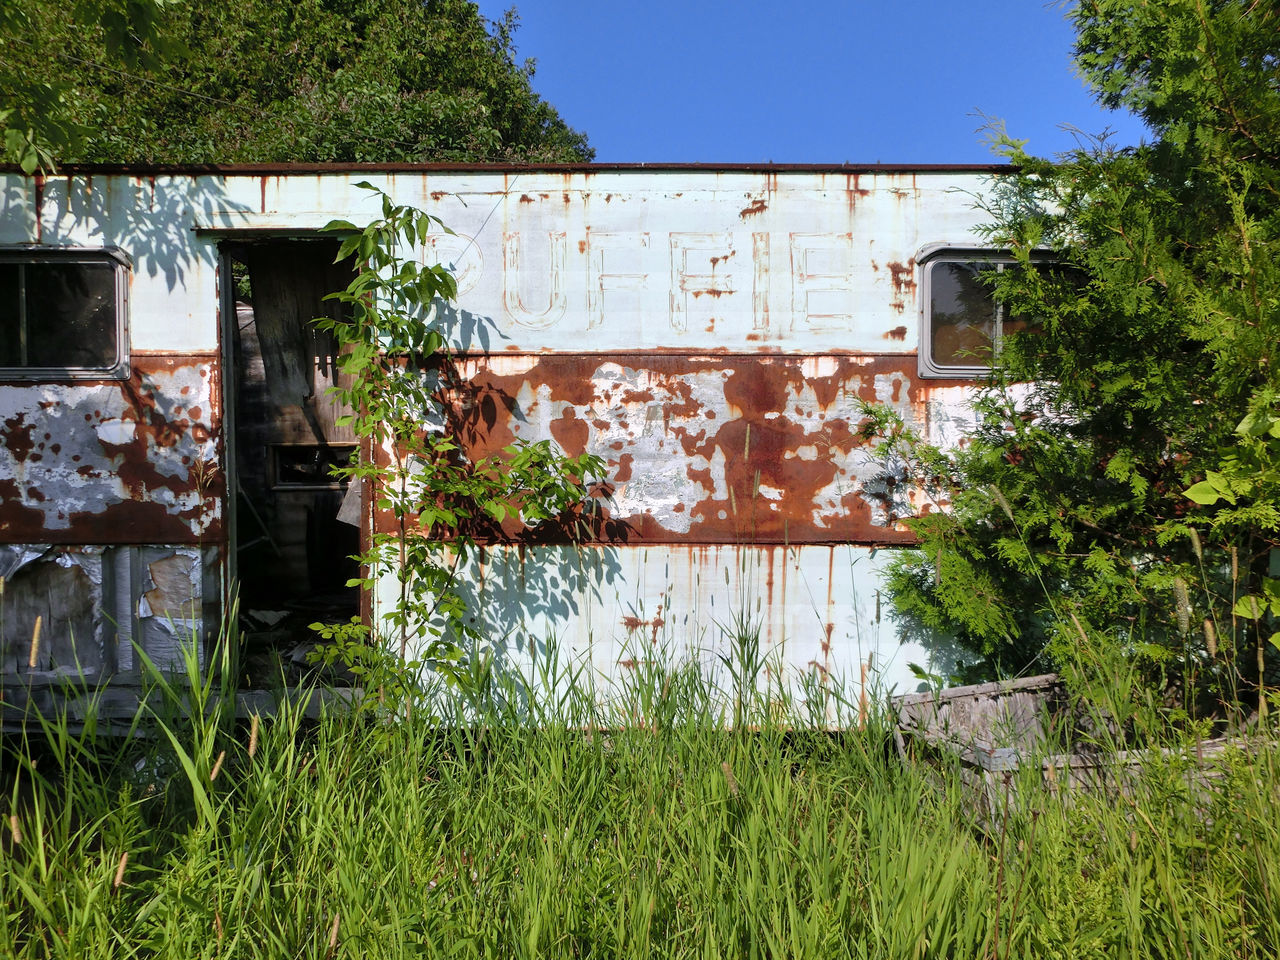 Abandoned Places Architecture Blue Building Exterior Built Structure Day Deterioration Grass Grassy Green Color Growing Growth House Nature No People Old Outdoors Plant Residential Structure Run-down Sky Sunny Trailor Tranquility